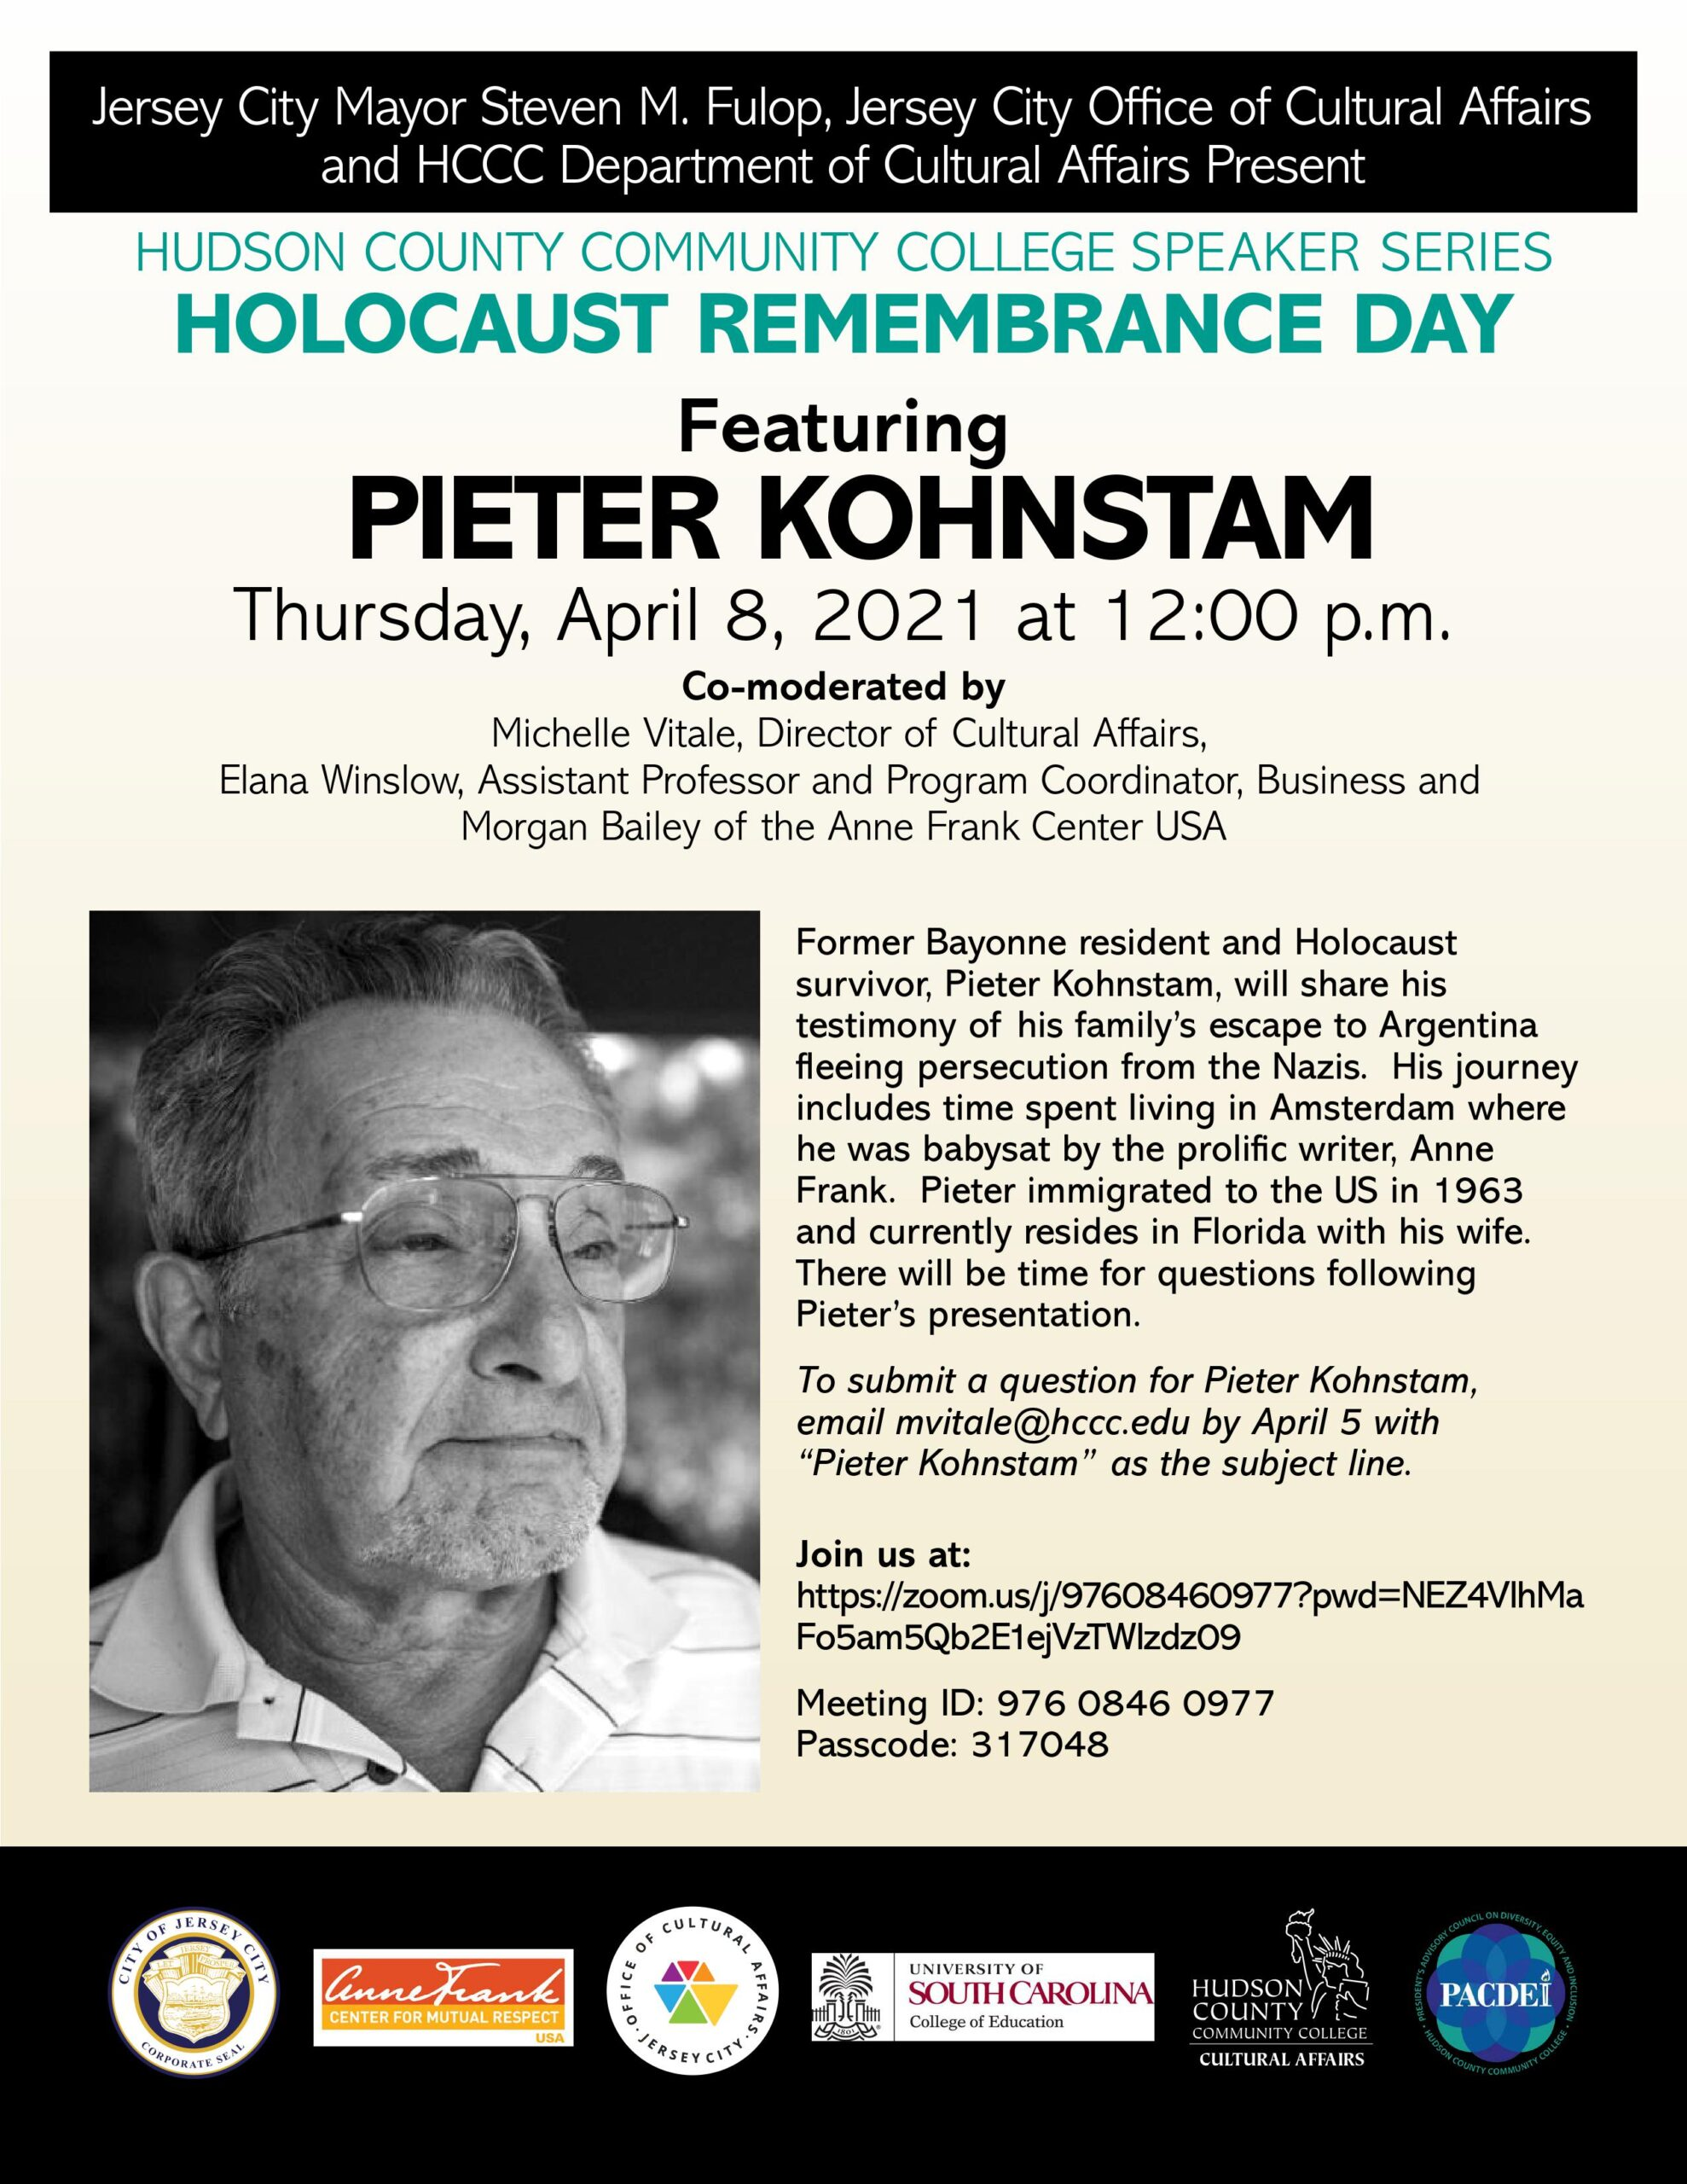 HCCC SPEAR SERIES FLYER APRIL 8TH EVENT WITH SPEAKER PIETER KOHNSTAM PICTURED